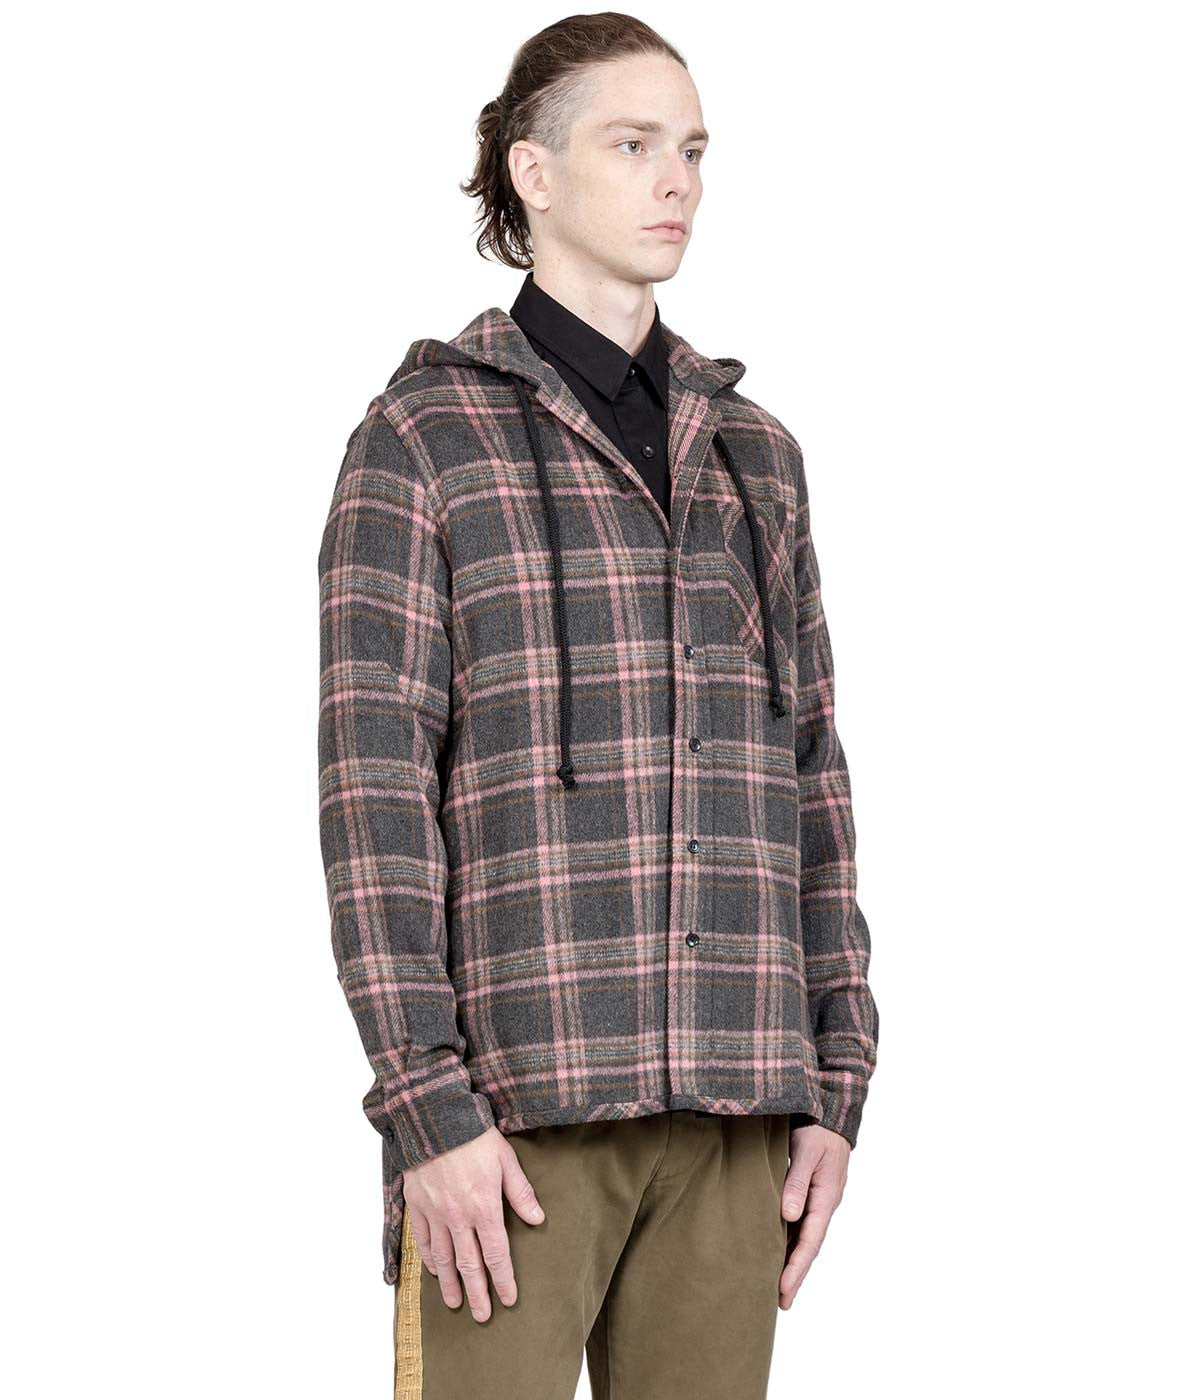 Grey Plaid Hooded Shirt